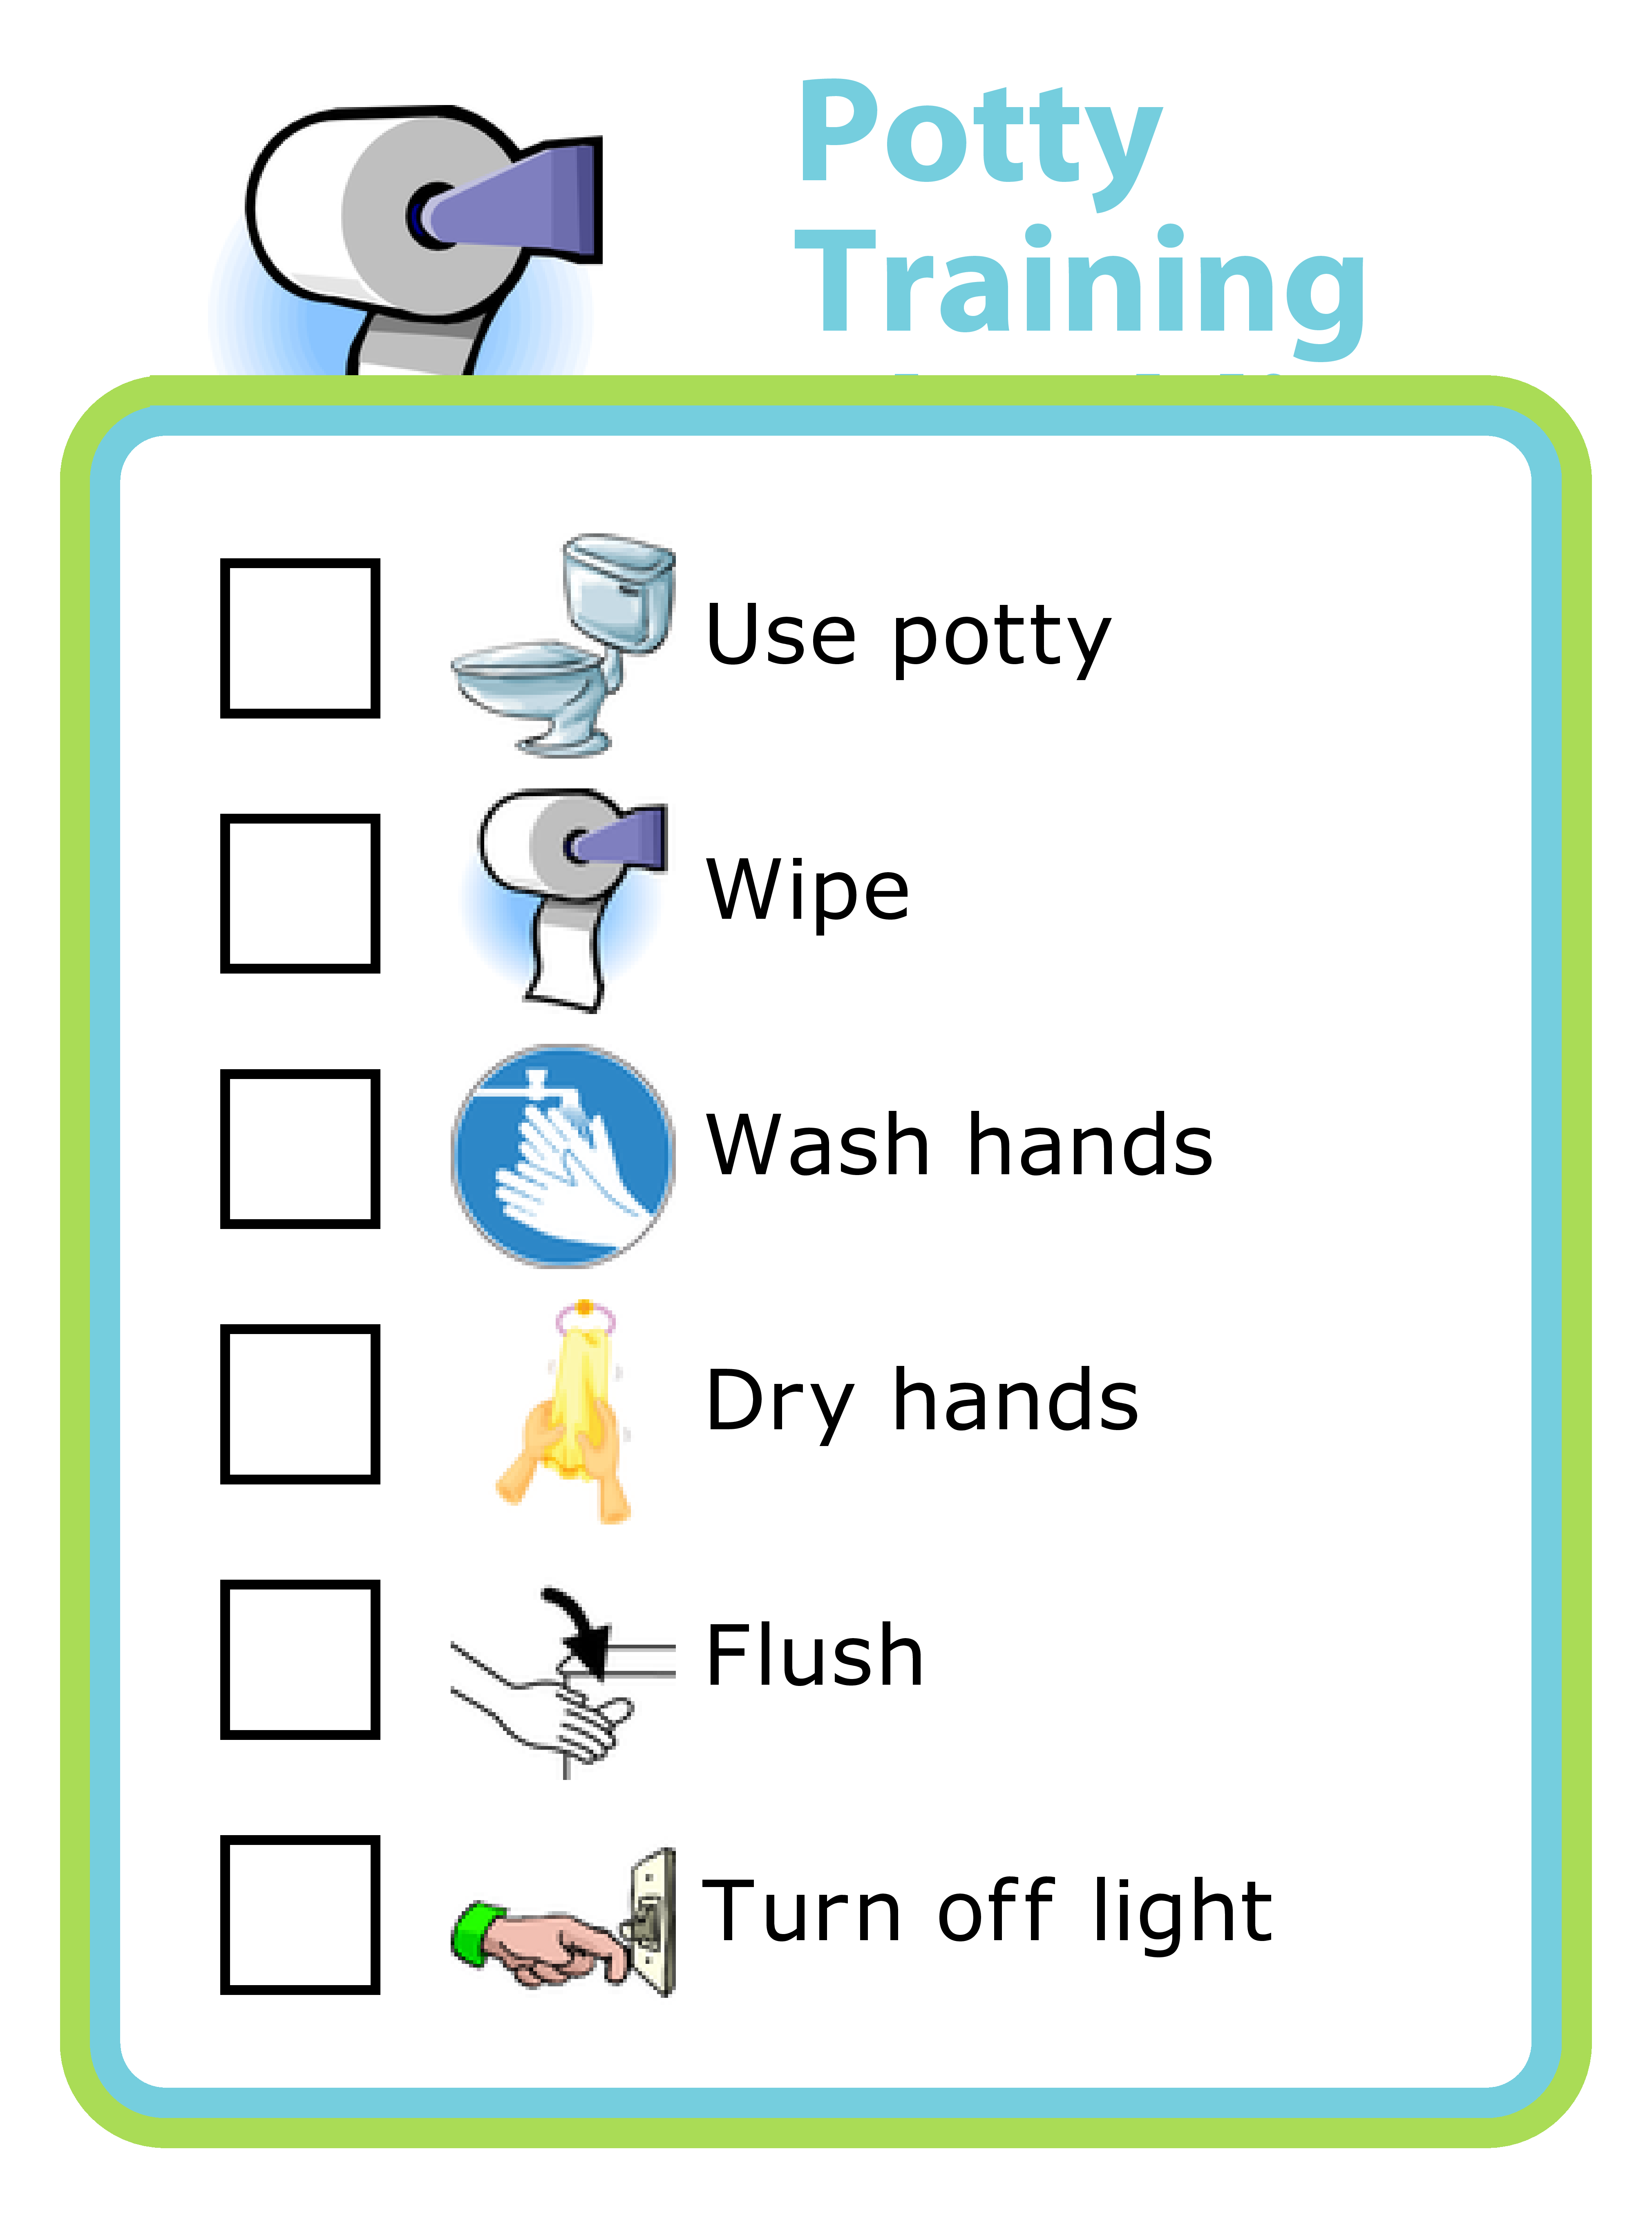 Make Your Own Potty Training Checklist Plus Lots Of Other Printable Activities For Kids